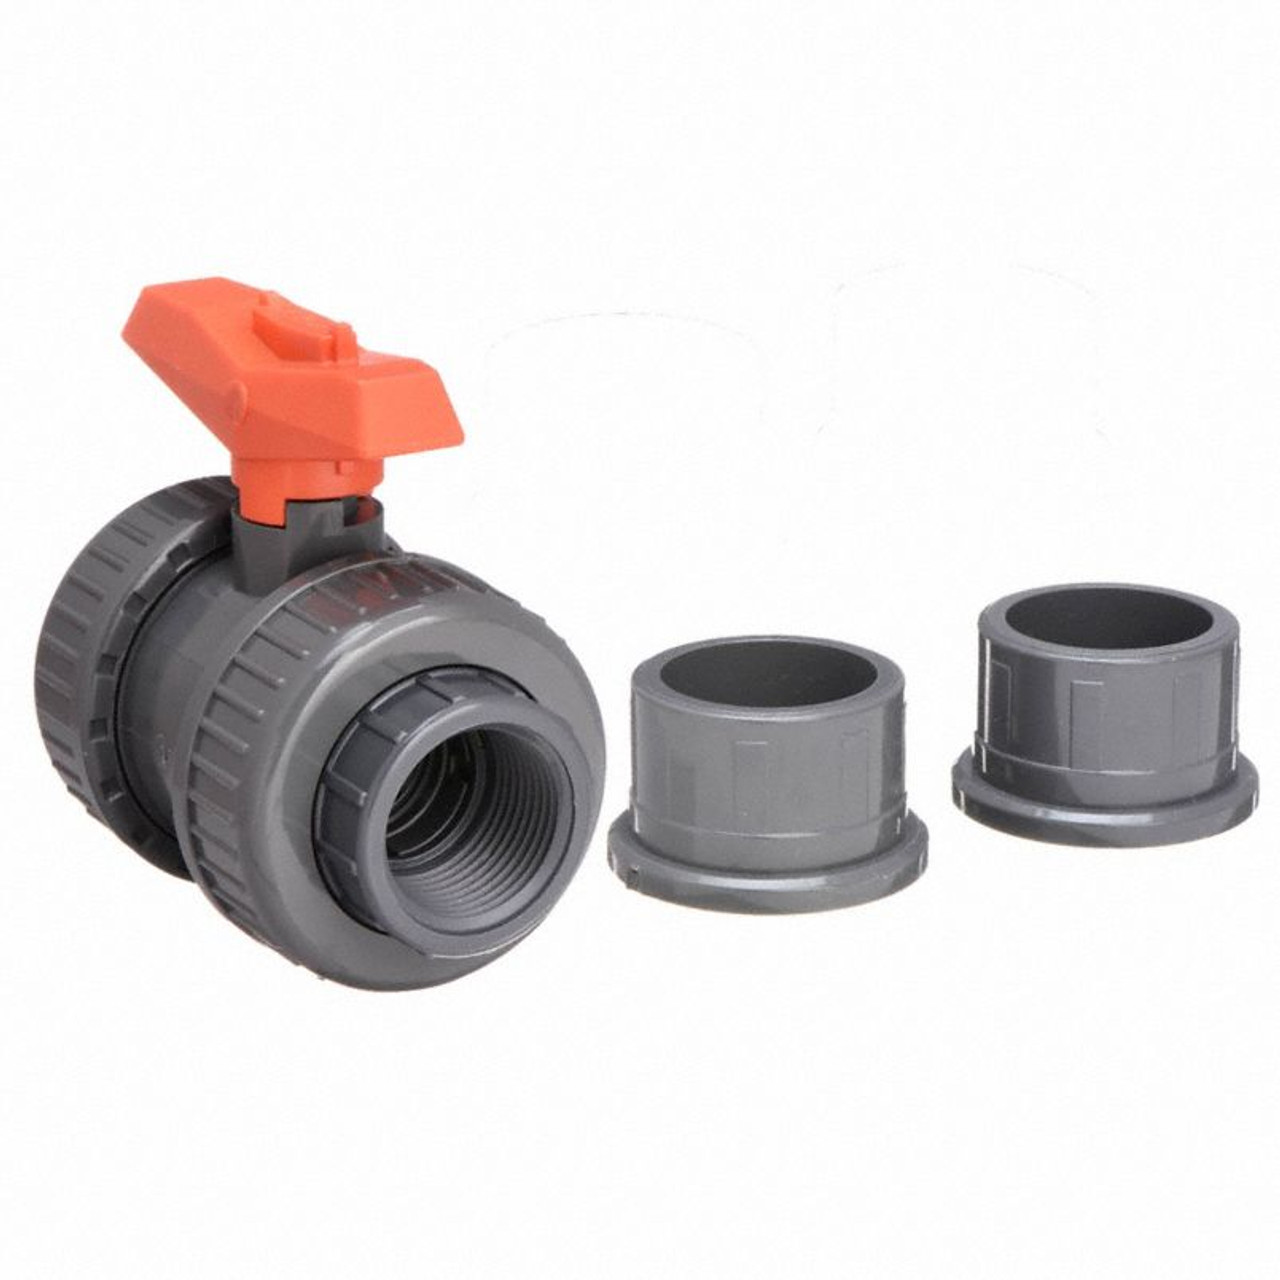 "3/4"" - 375 Ball Valve Socket/Threaded NPT PVC/EPDM (161375003)"